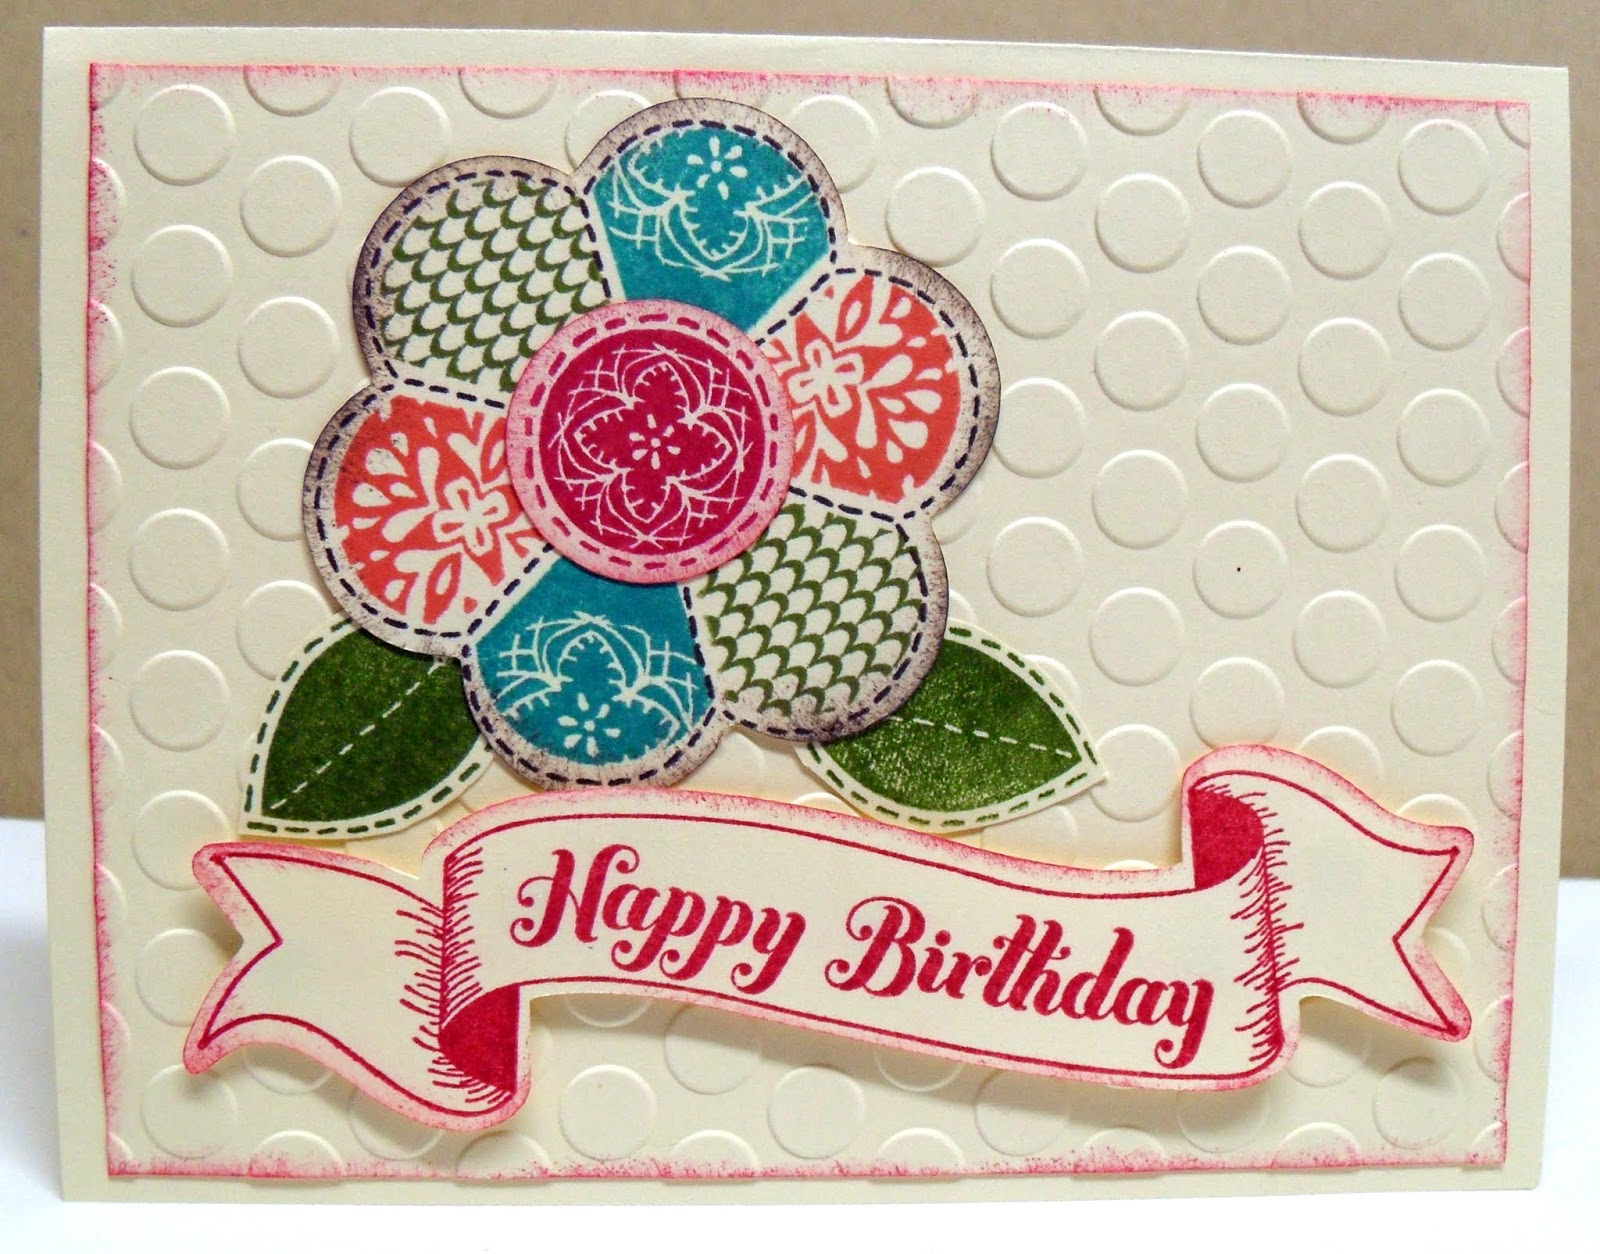 greeting cards for birthday design ; Birthday-Greeting-Cards-For-Father-In-Law-to-inspire-you-how-to-create-the-birthday-Card-with-the-best-way-11